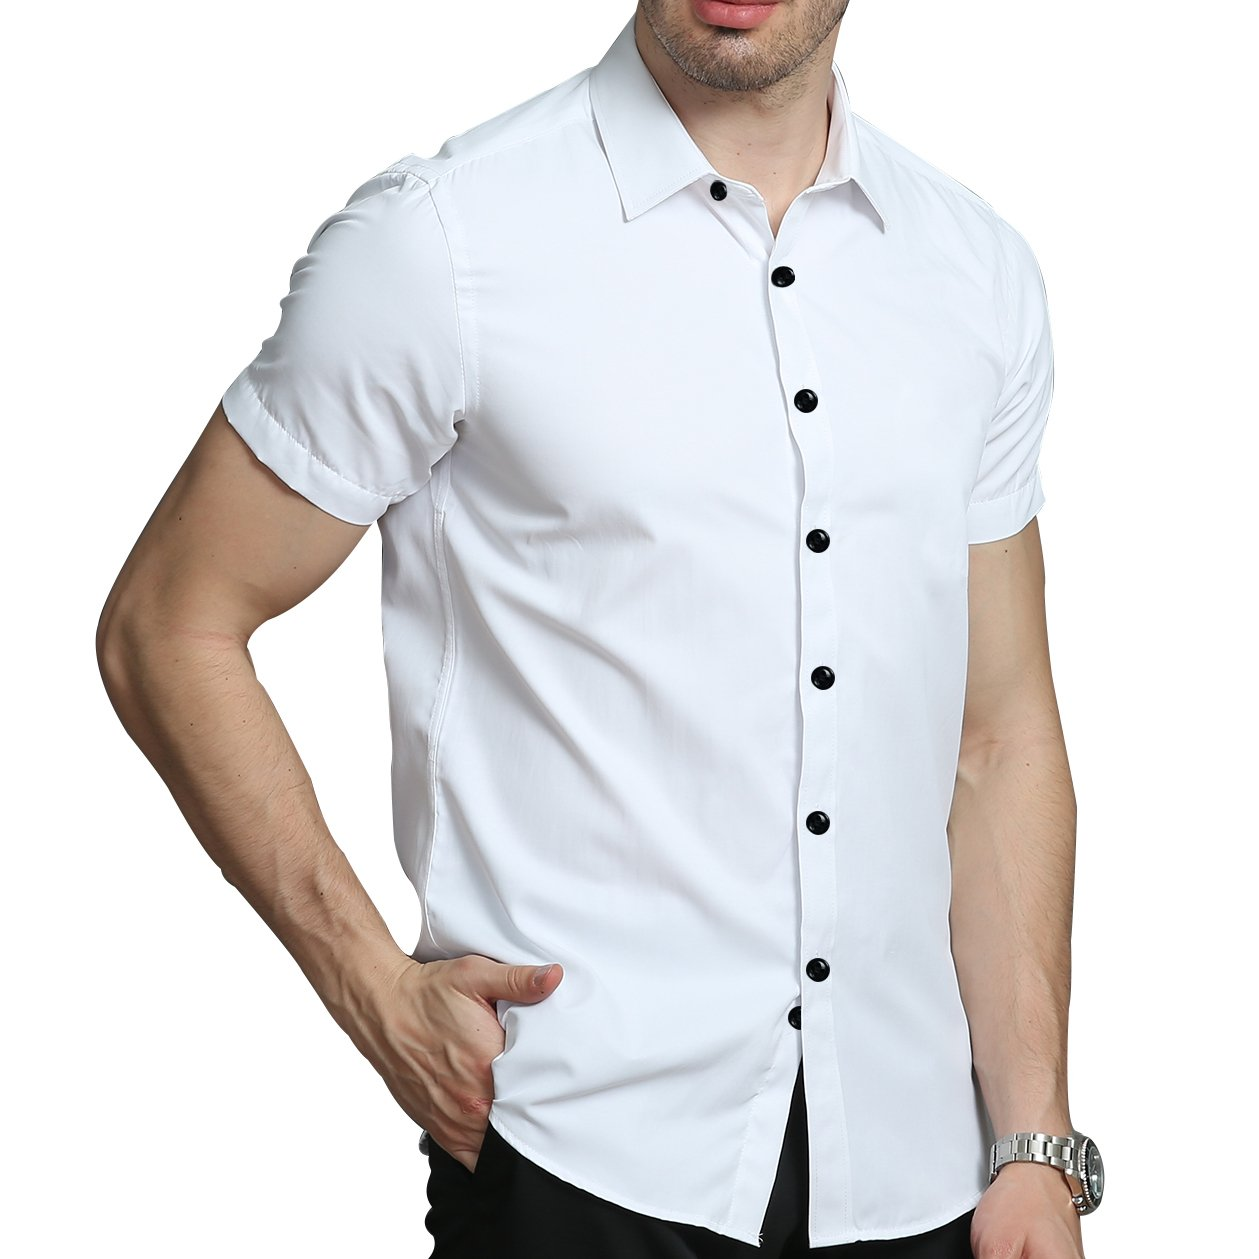 5a5e73fcc LiberalApp Men s Bamboo Fiber Solid Color White Short Sleeve Slim Casual  Business Combination Button Shirt